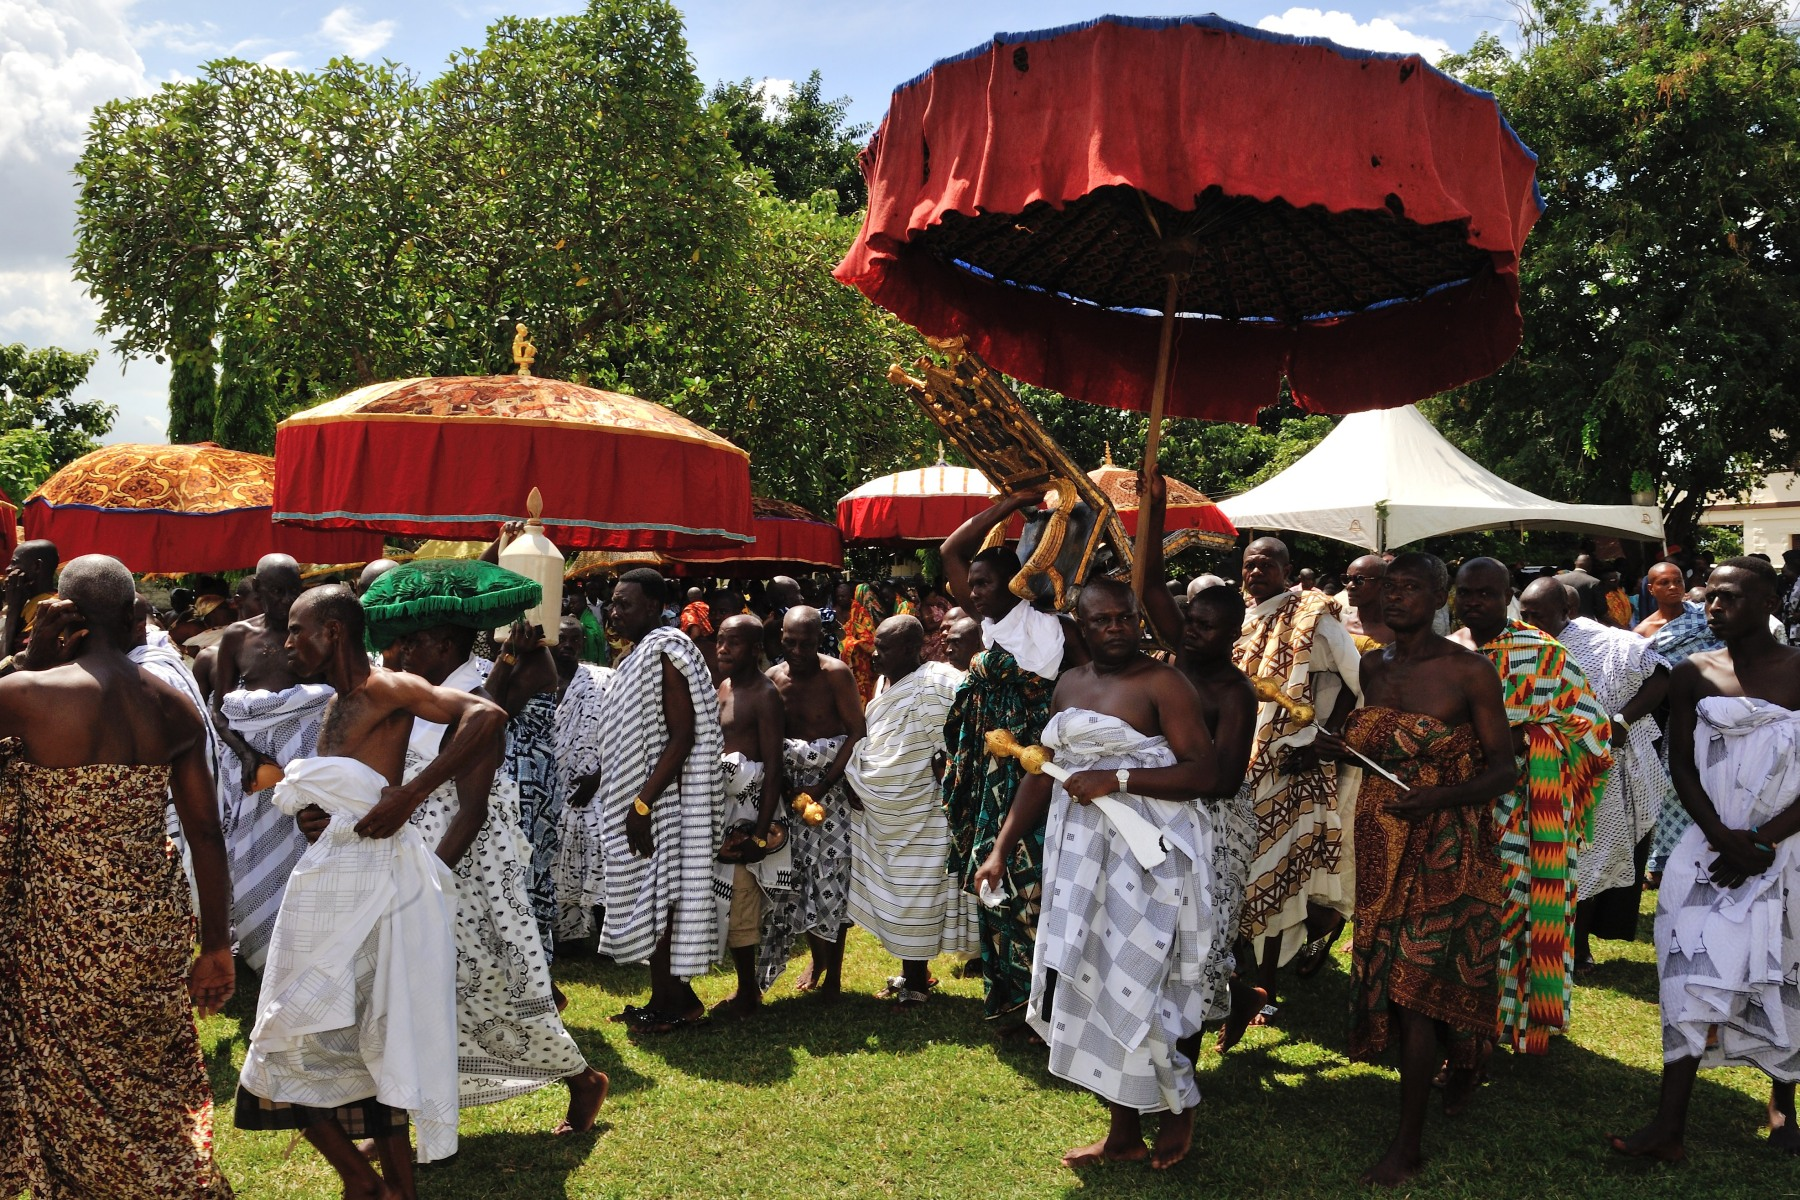 In honour of Their Excellencies' visit to Kumasi, Otumfuo Osei Tutu II, 16th King of the Kingdom of Ashanti, hosted a durbar—a gathering of chiefs of the Ashanti Region—at the Manhyia Palace.